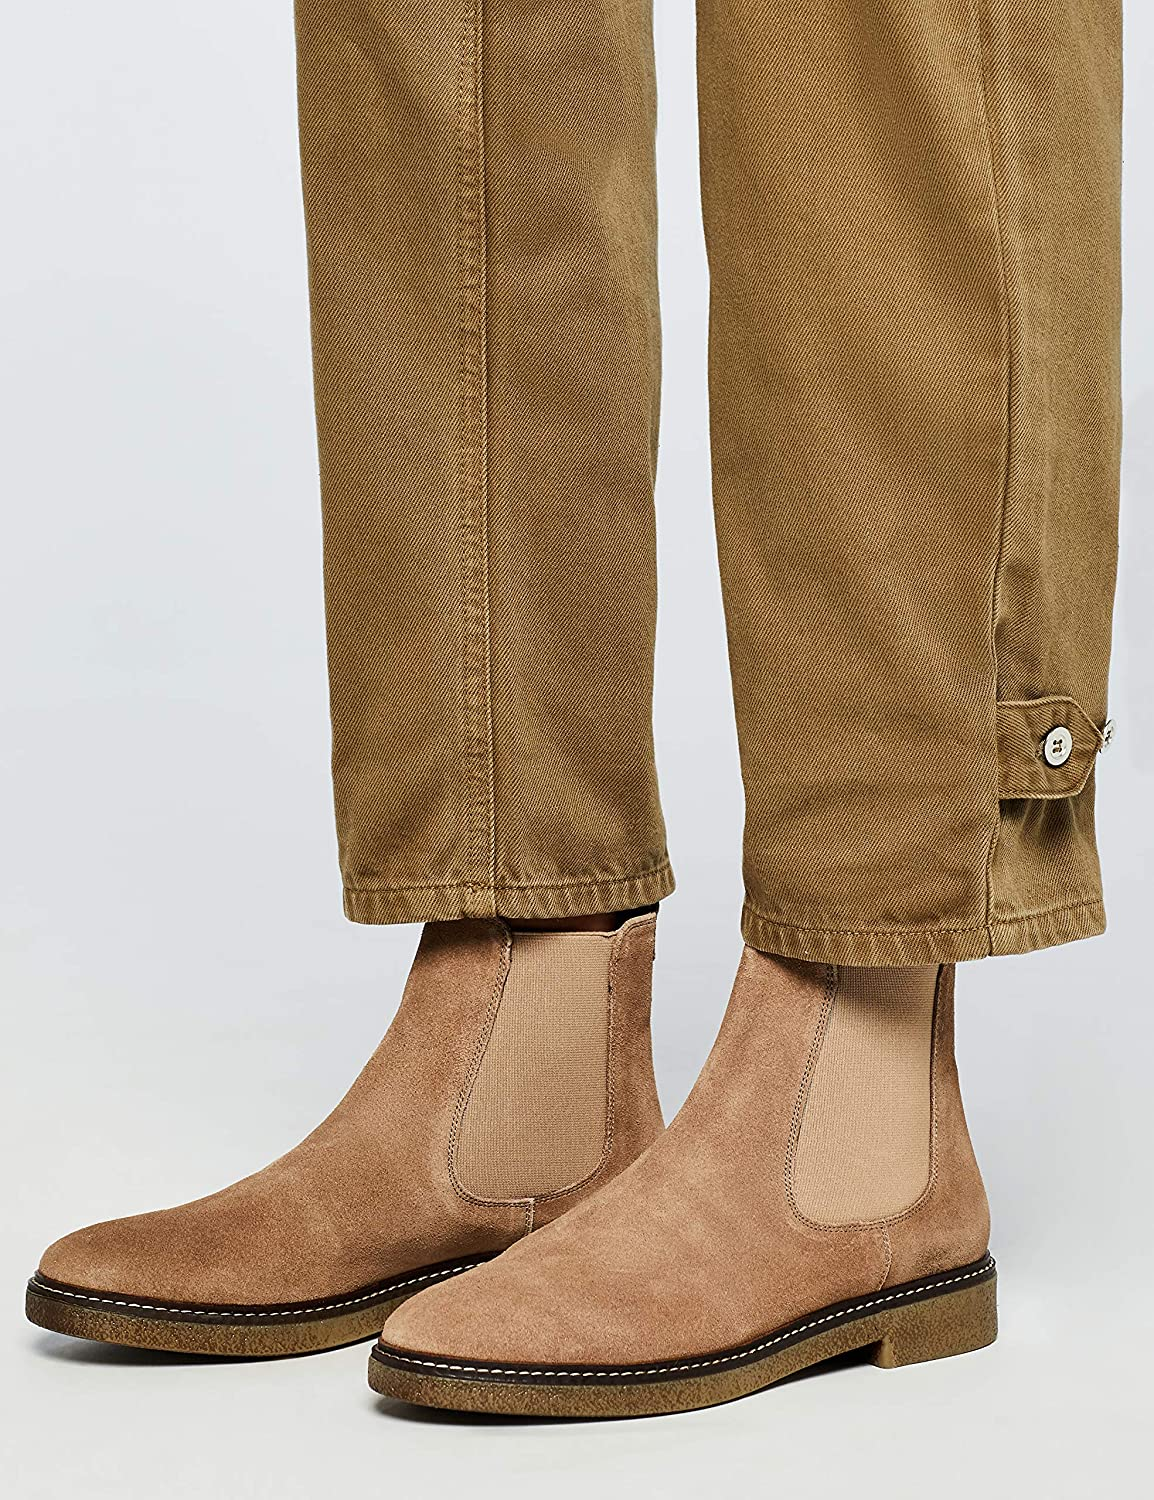 Amazon-Marke: find. Damen Chelsea Boots Grau Taupe Taupe